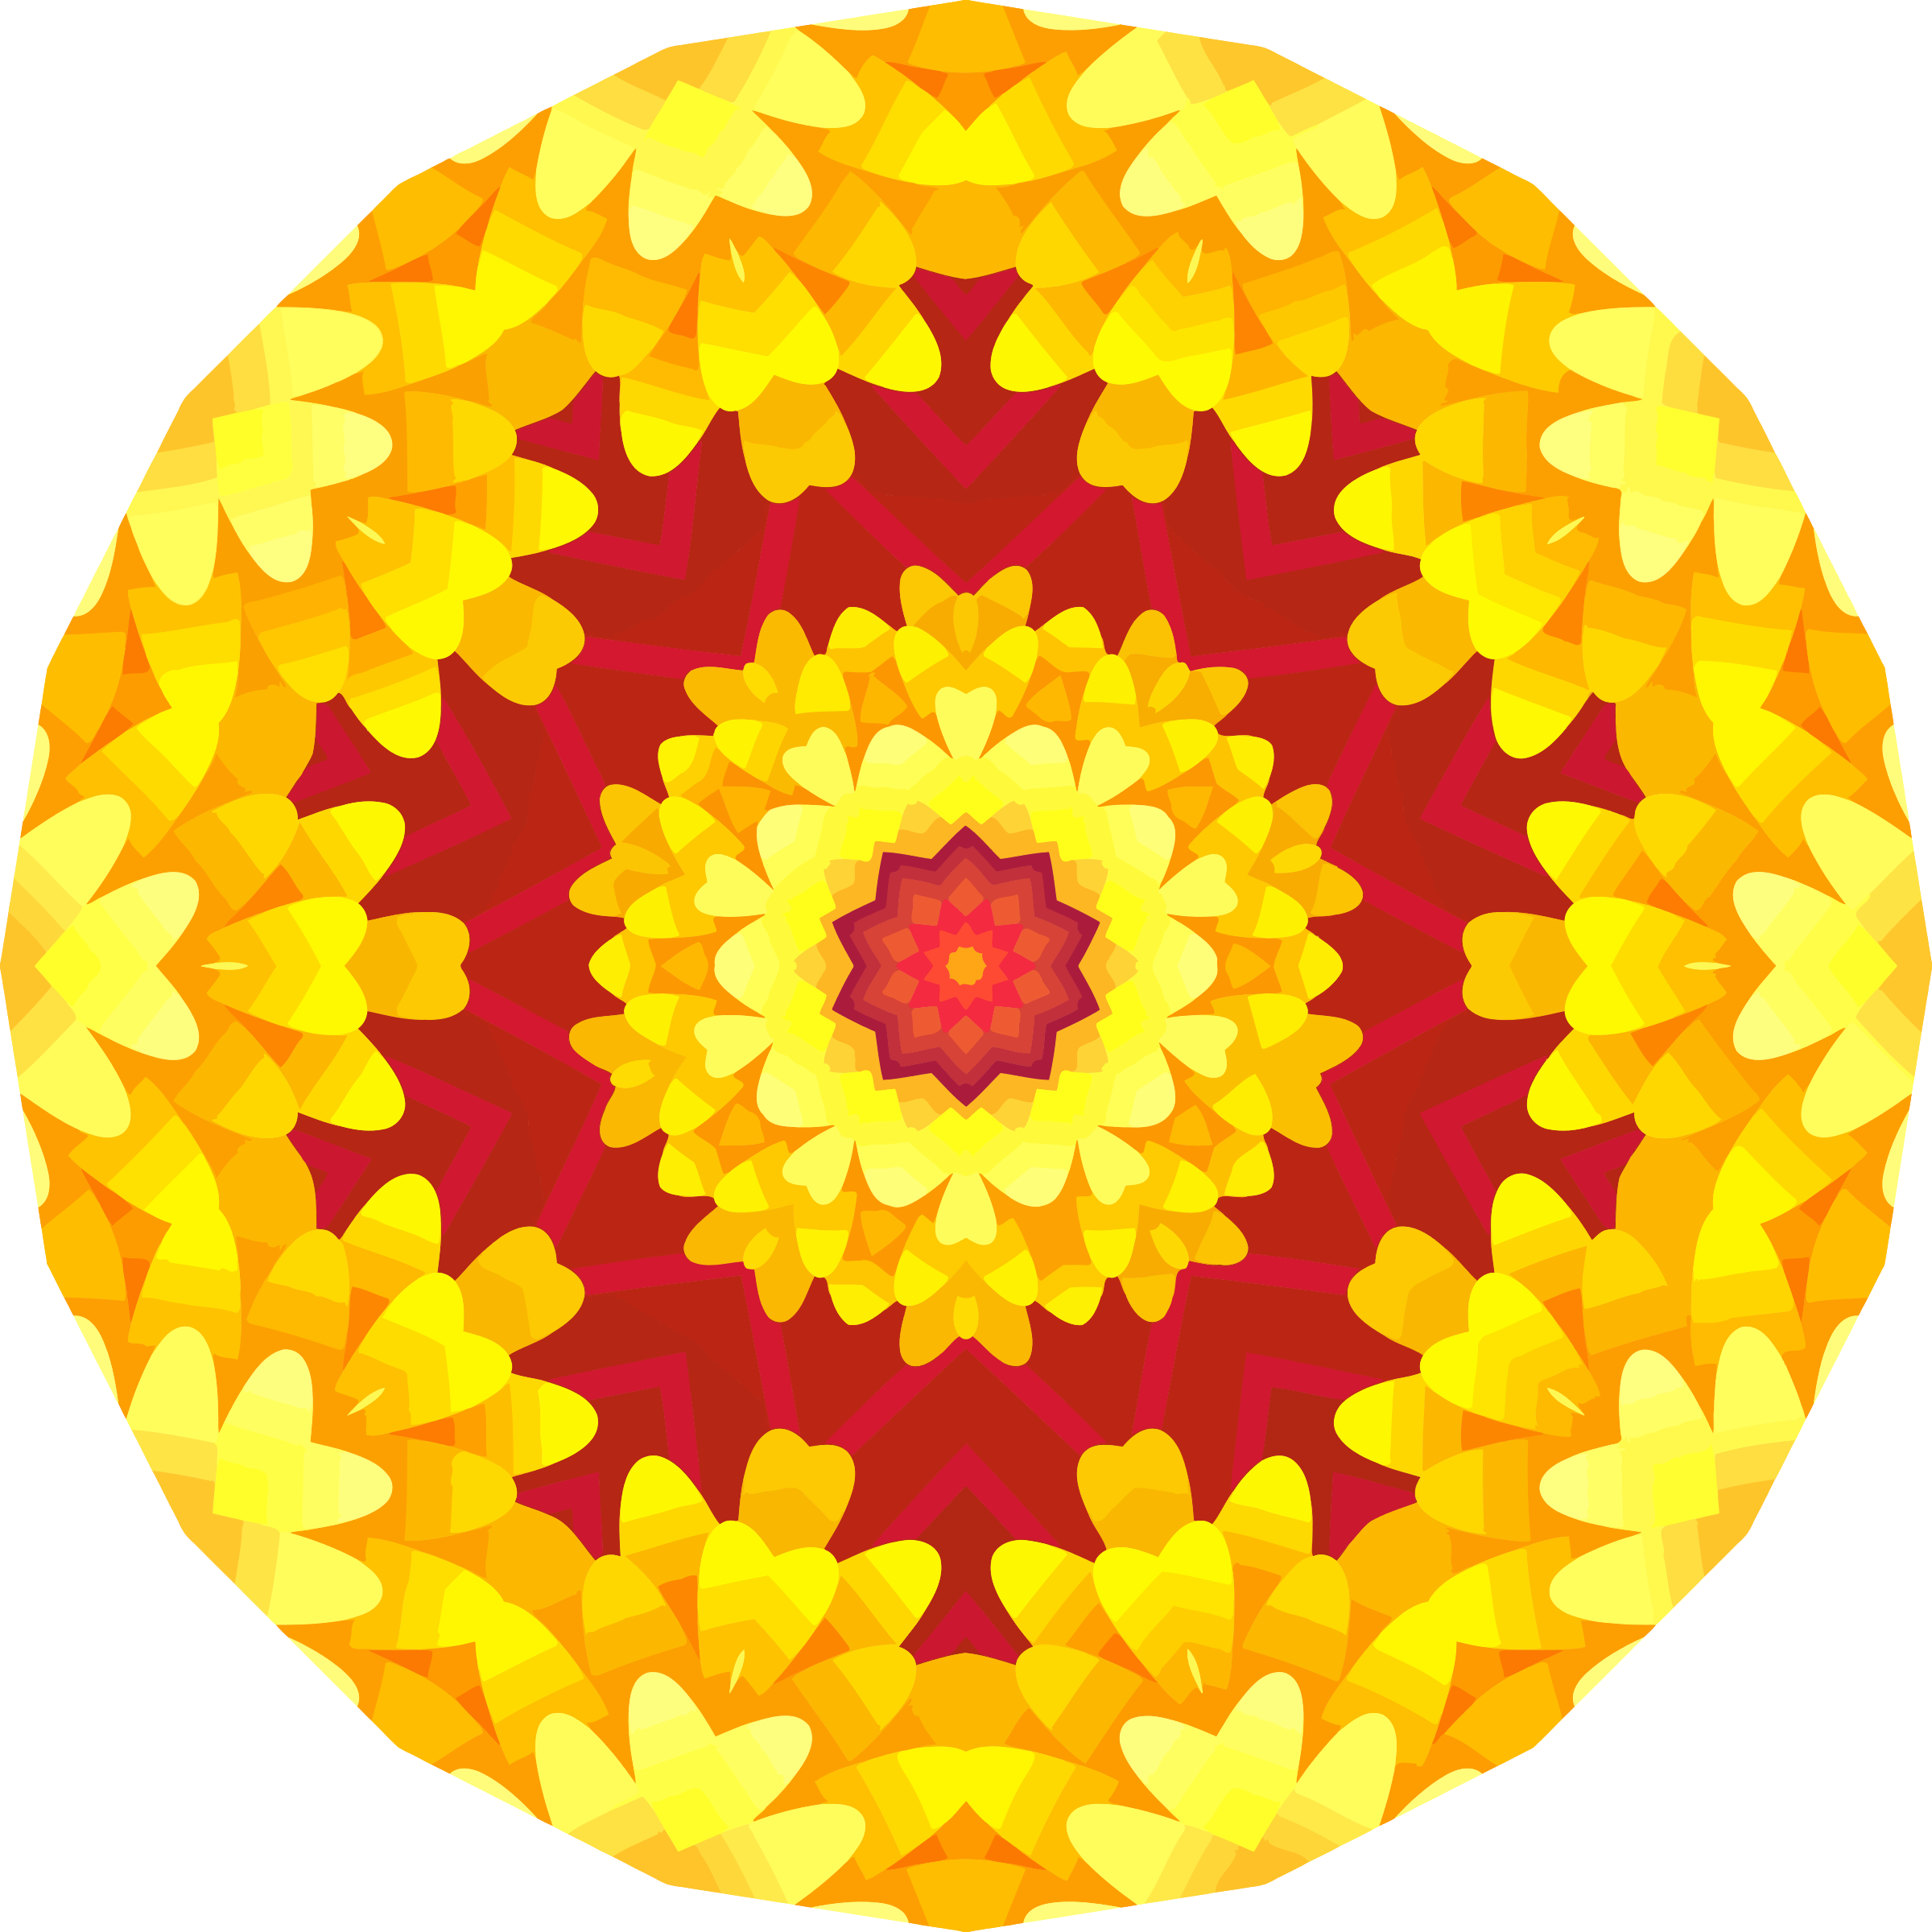 Mandala 8 by Firkin